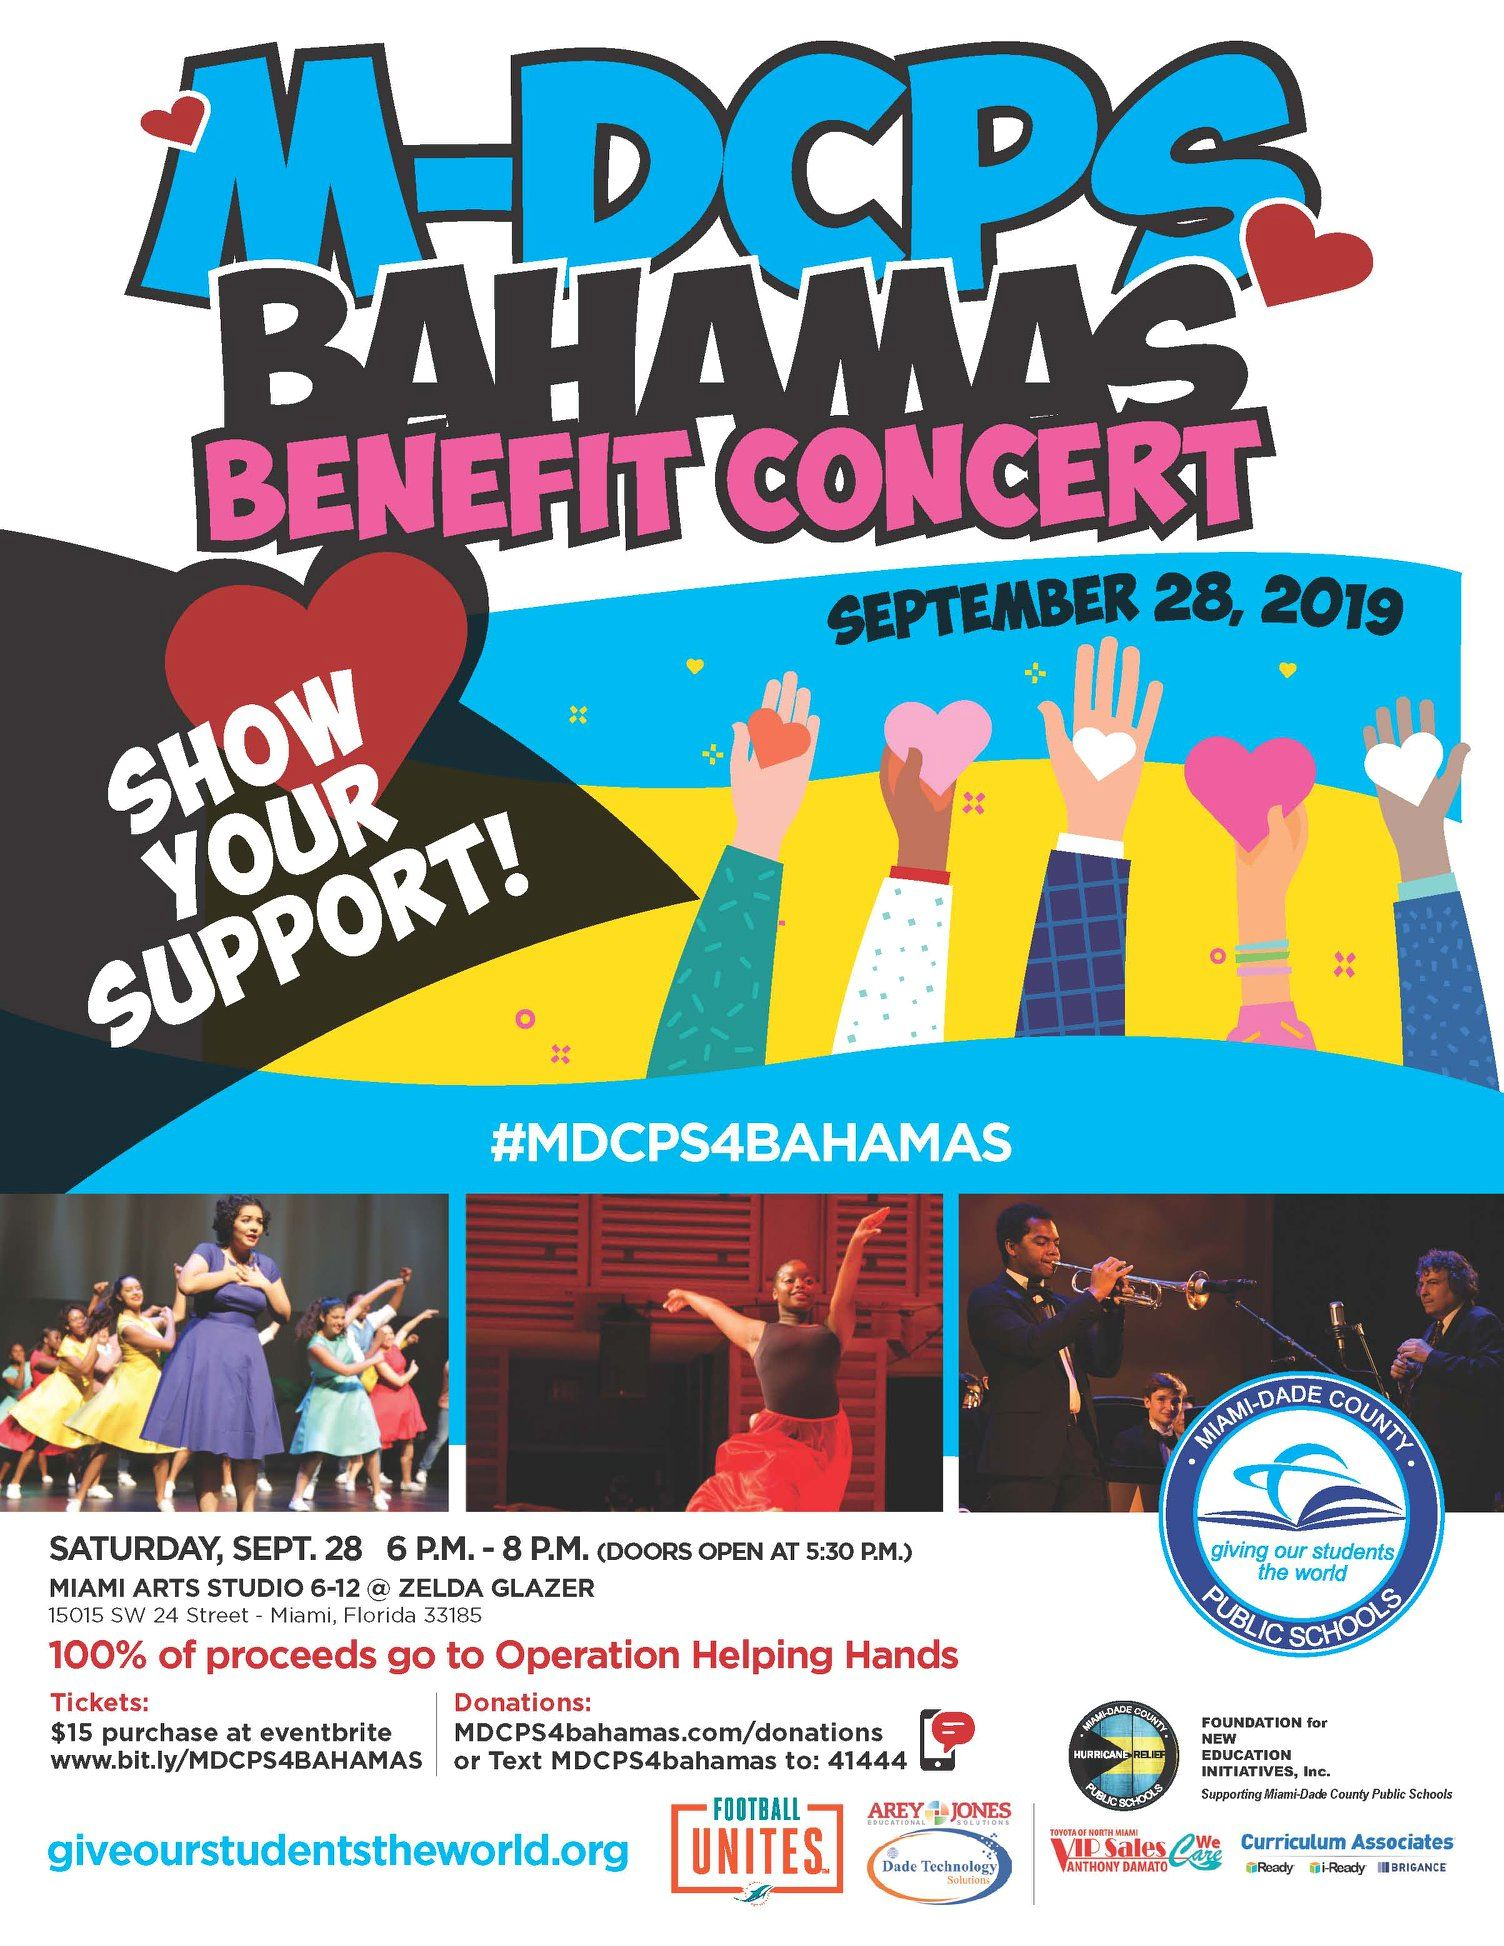 M-DCPS Bahamas Benefit Concert. Show your support on Saturday, September 28, 2019 from 6 - 8 PM at M